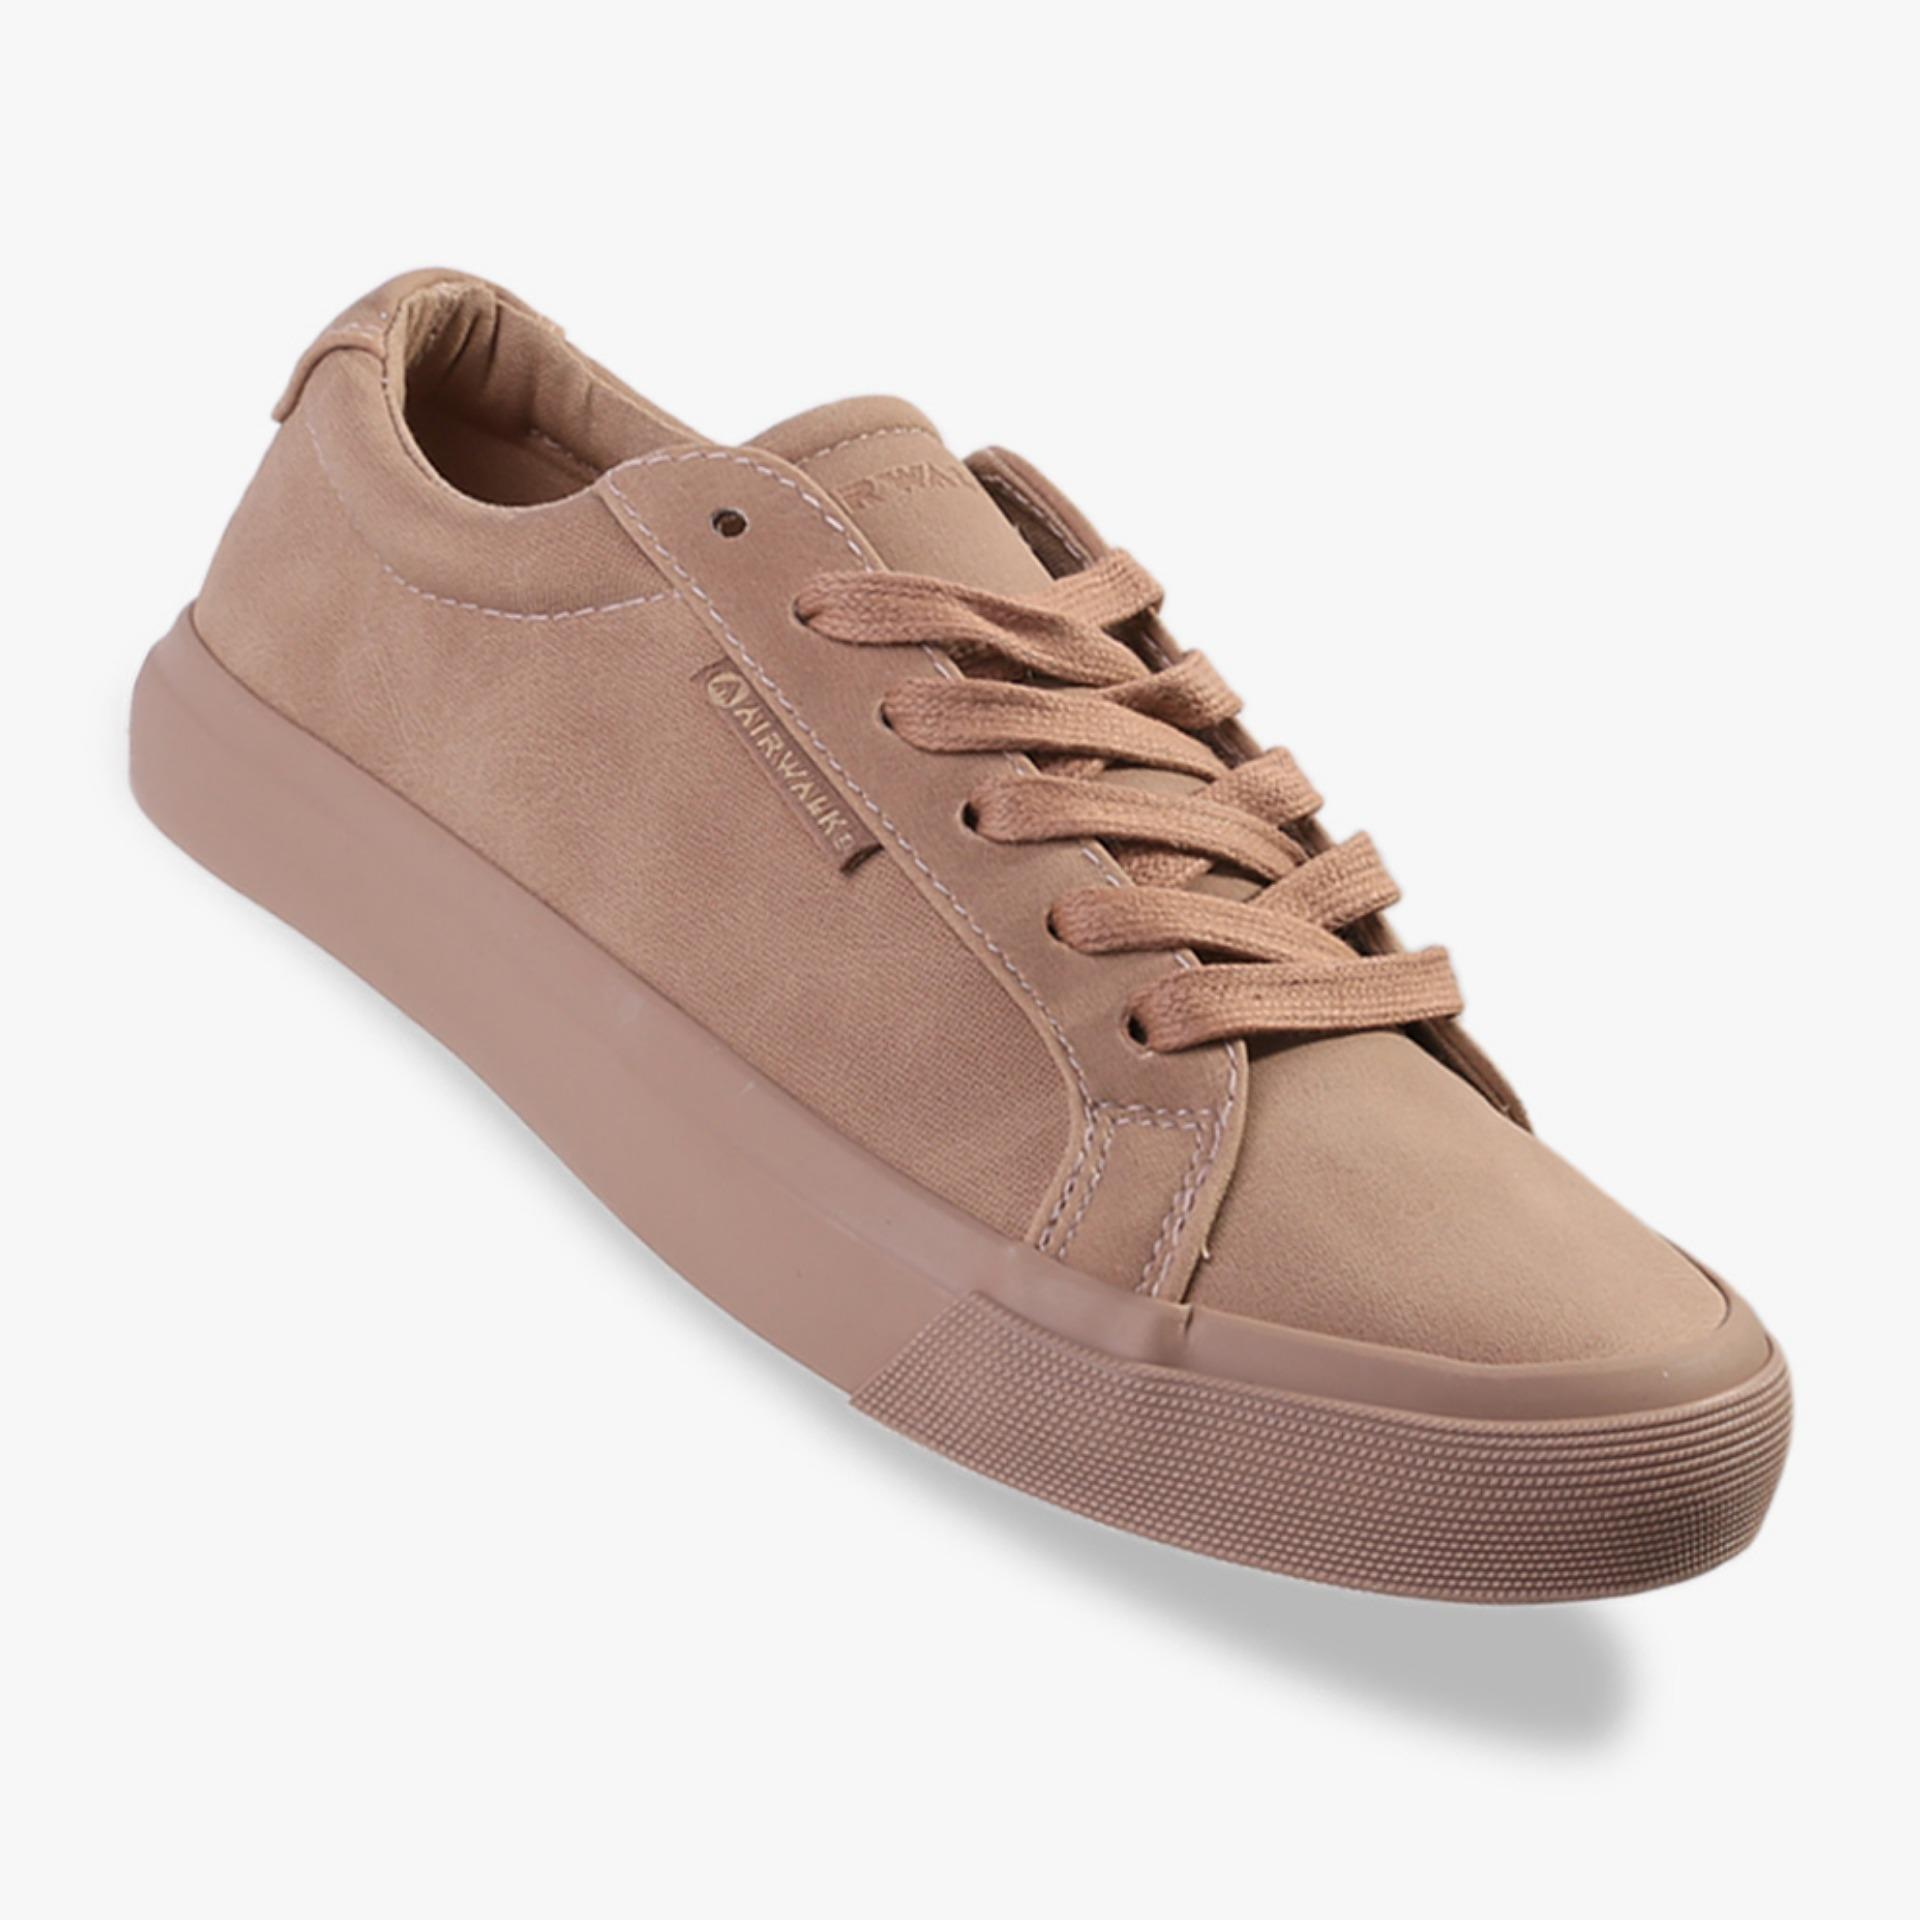 Mudah dicuci Airwalk Joel Women's Sneakers Shoes - Cokelat